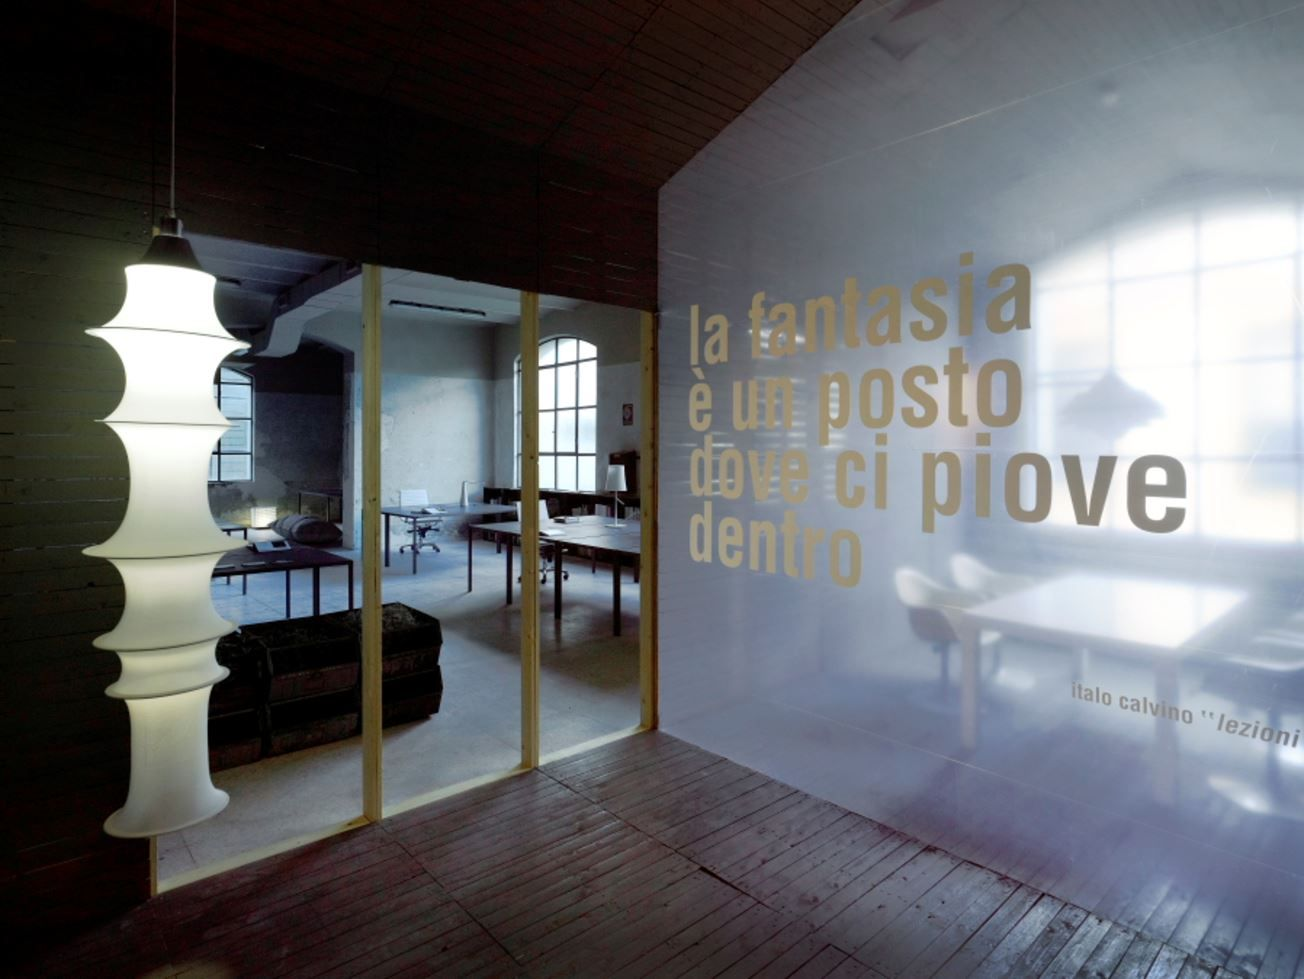 studio q-bic eZeroprogetti - architectural office and coworking area -  Firenze, Itlia - 2012 - studio q-bic